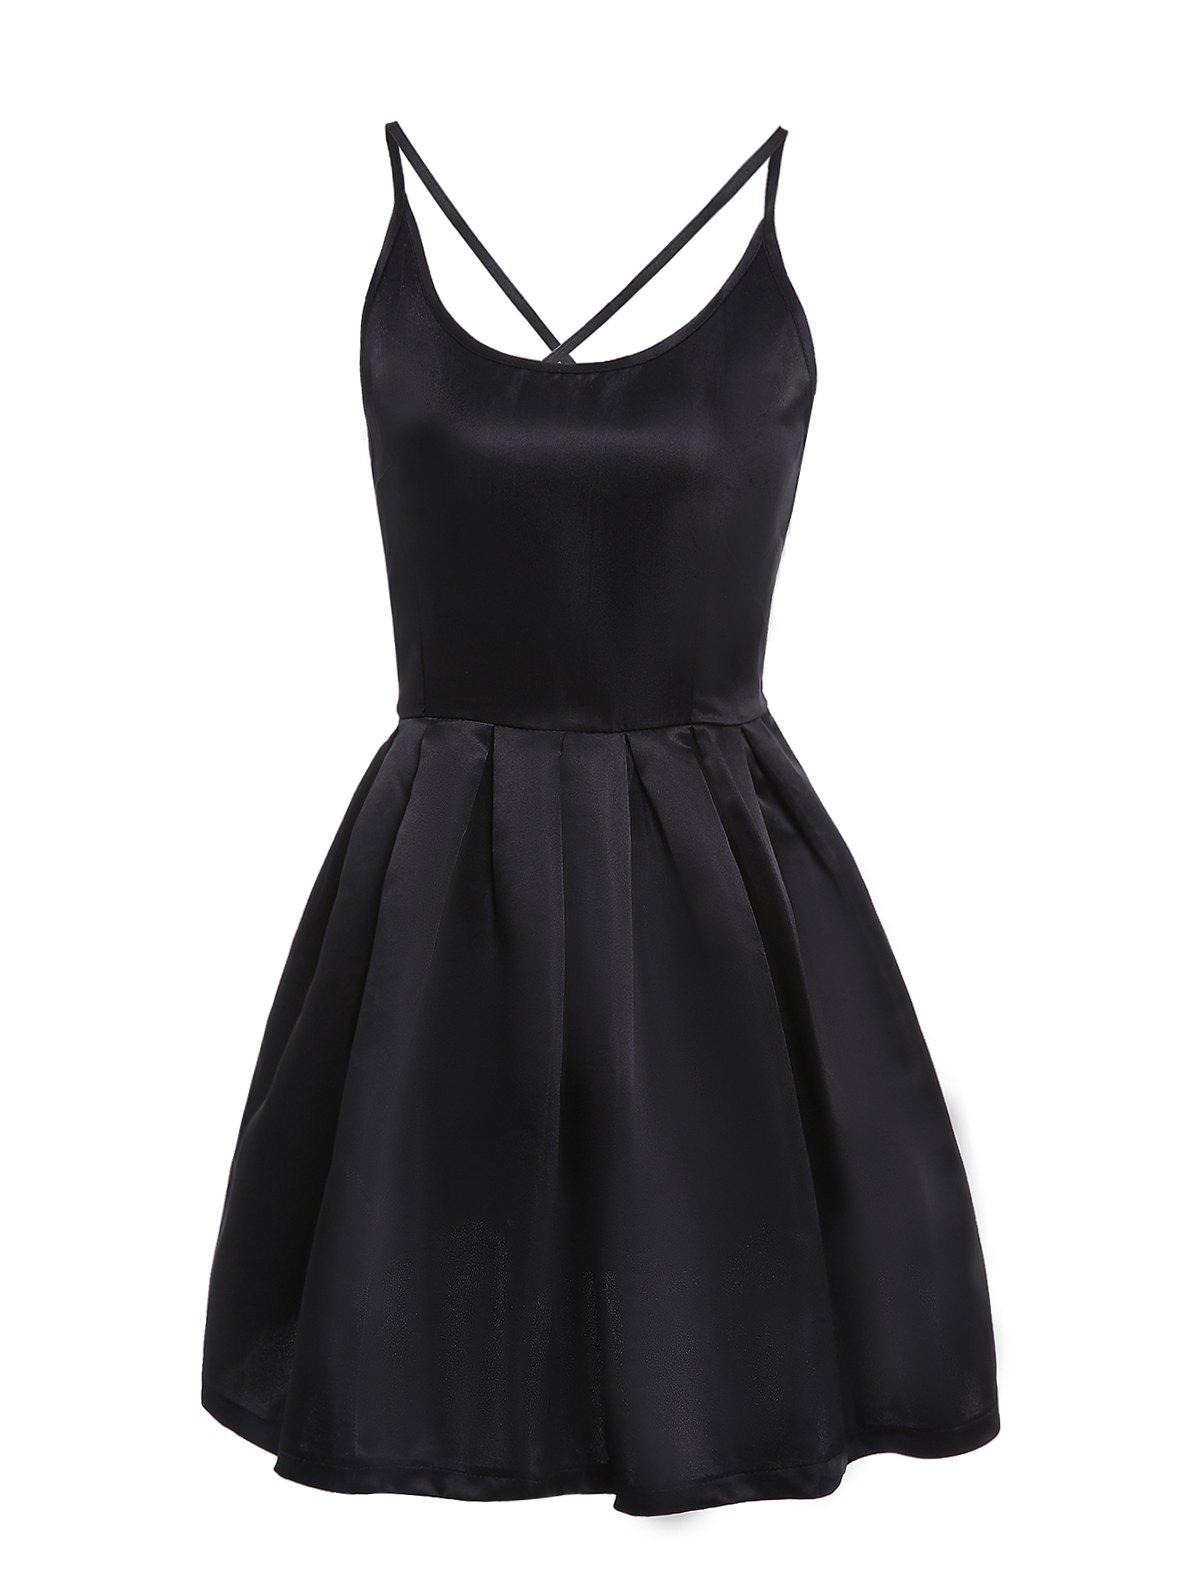 Sexy Spaghetti Strap Sleeveless Solid Color Cross-Back Low-Cut Women's Dress - BLACK S